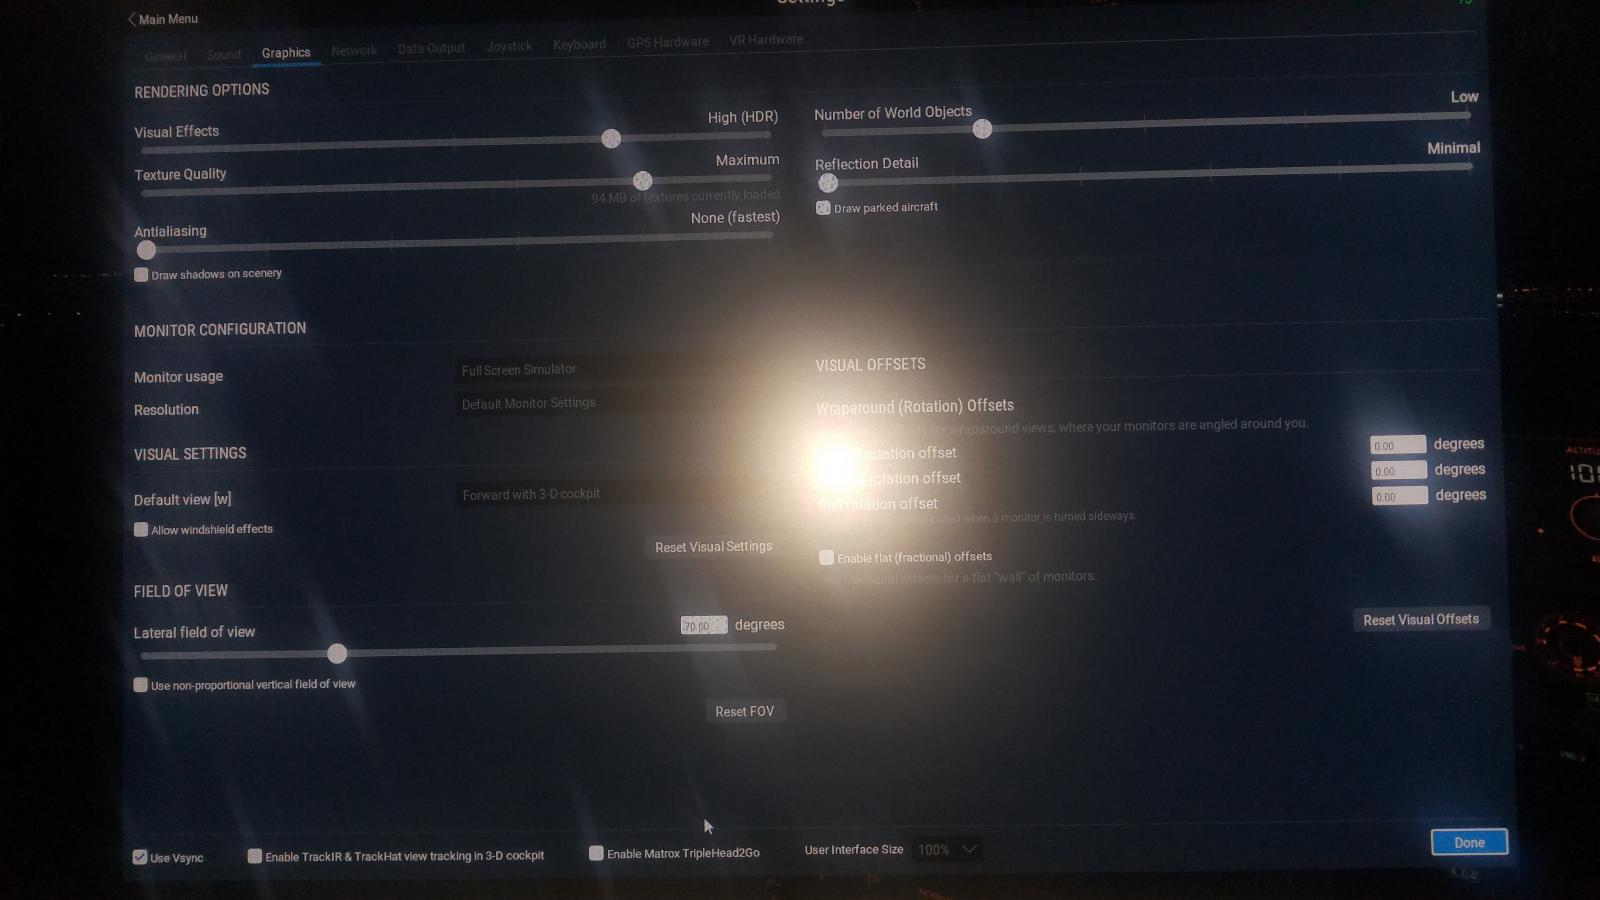 FPS issue after update  - XP11: Rendering Options - FPS - Hardware